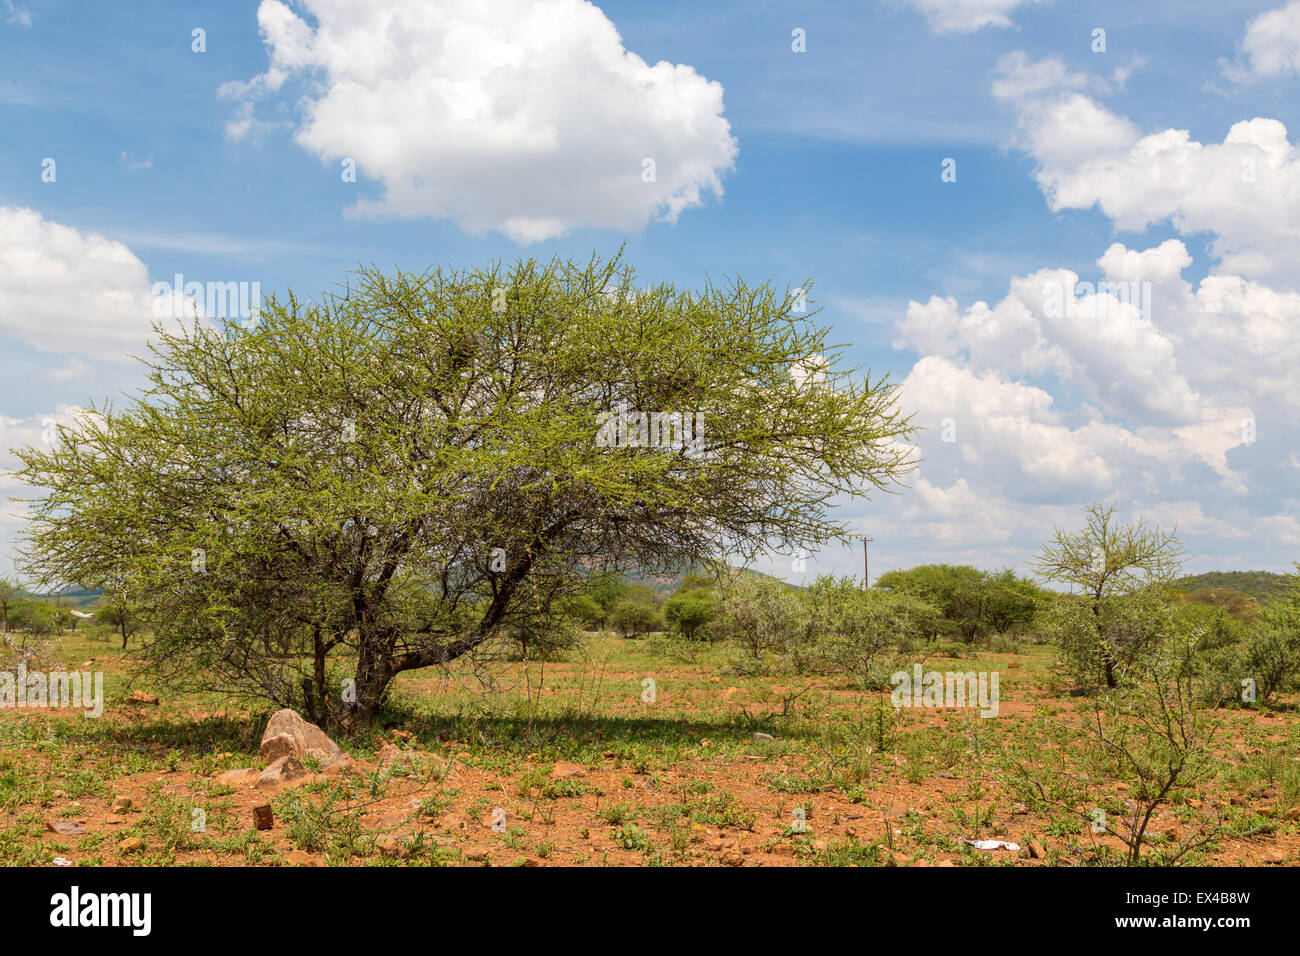 Shrubs which are the typical vegetation common in the dry savannah grasslands of Botswana - Stock Image